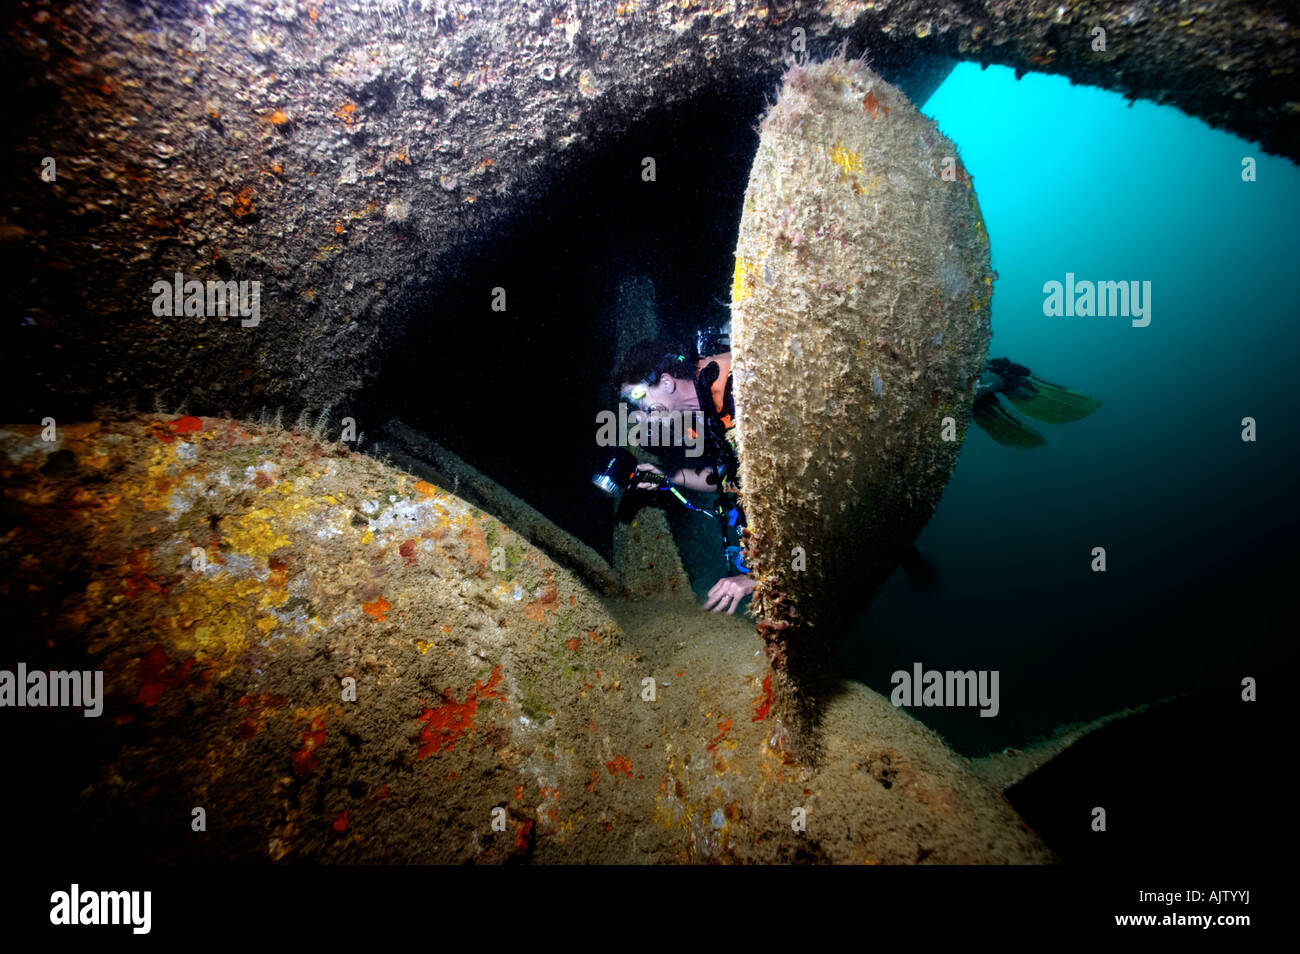 A diver investigates the propeller of The Salem, a shipwreck on Hyndman Reef in the Gulf Of Tadjoura near Djibouti. - Stock Image